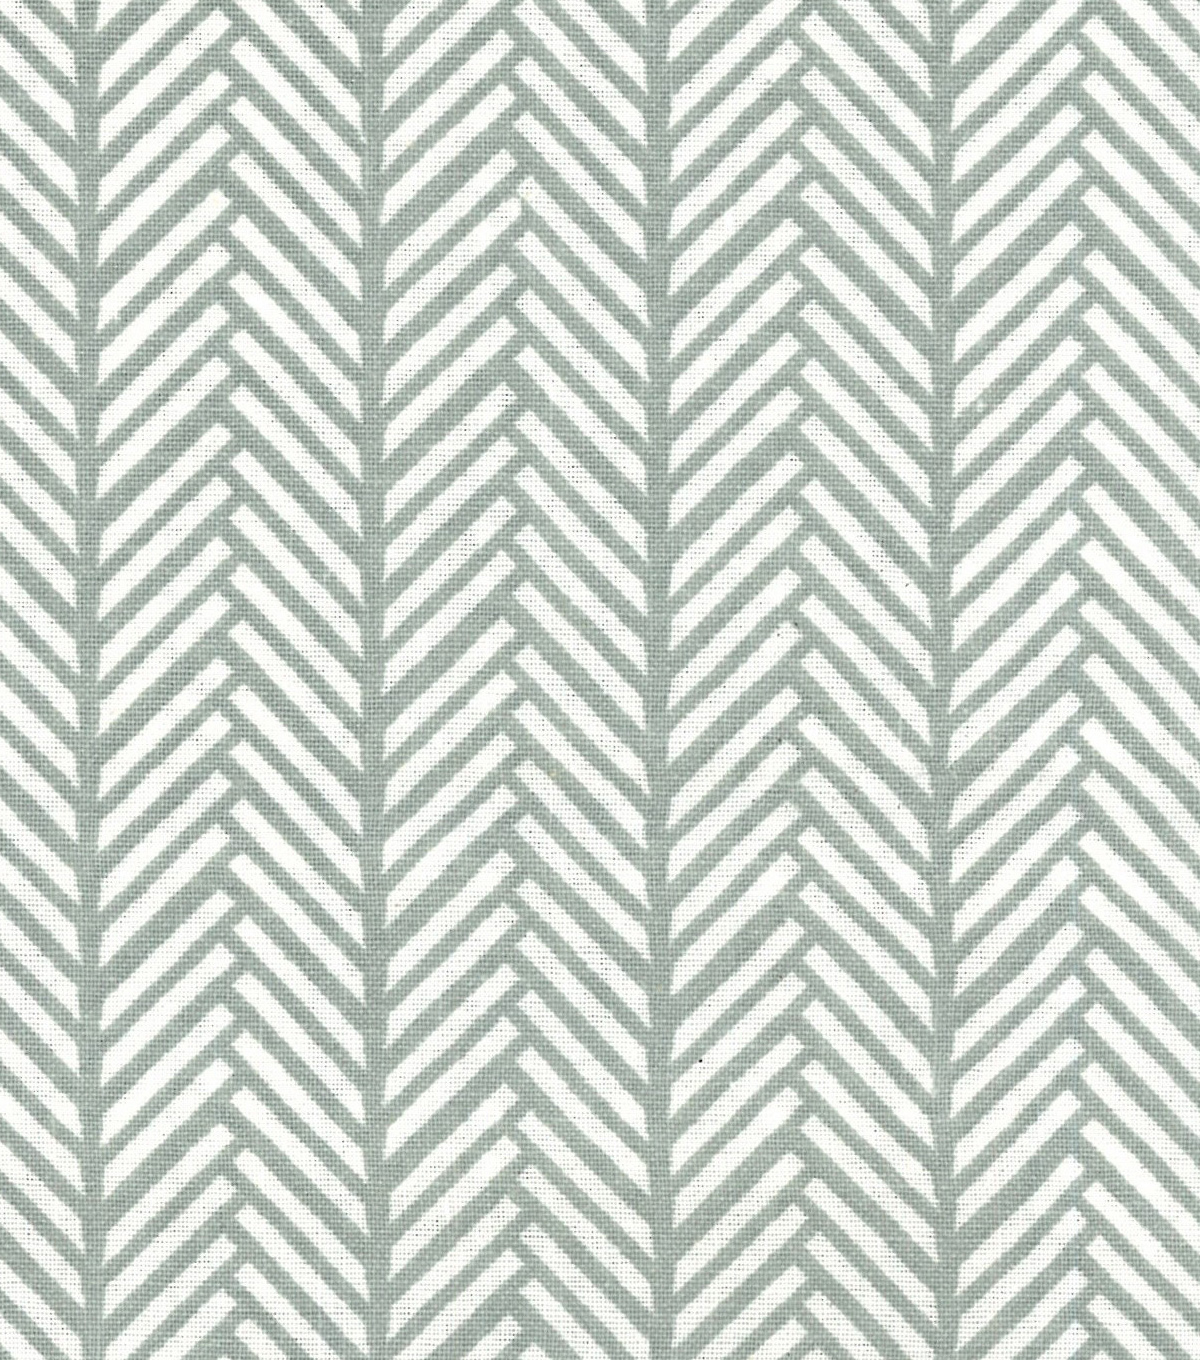 Quilter\u0027s Showcase Cotton Fabric -Linear Arrows on Gray